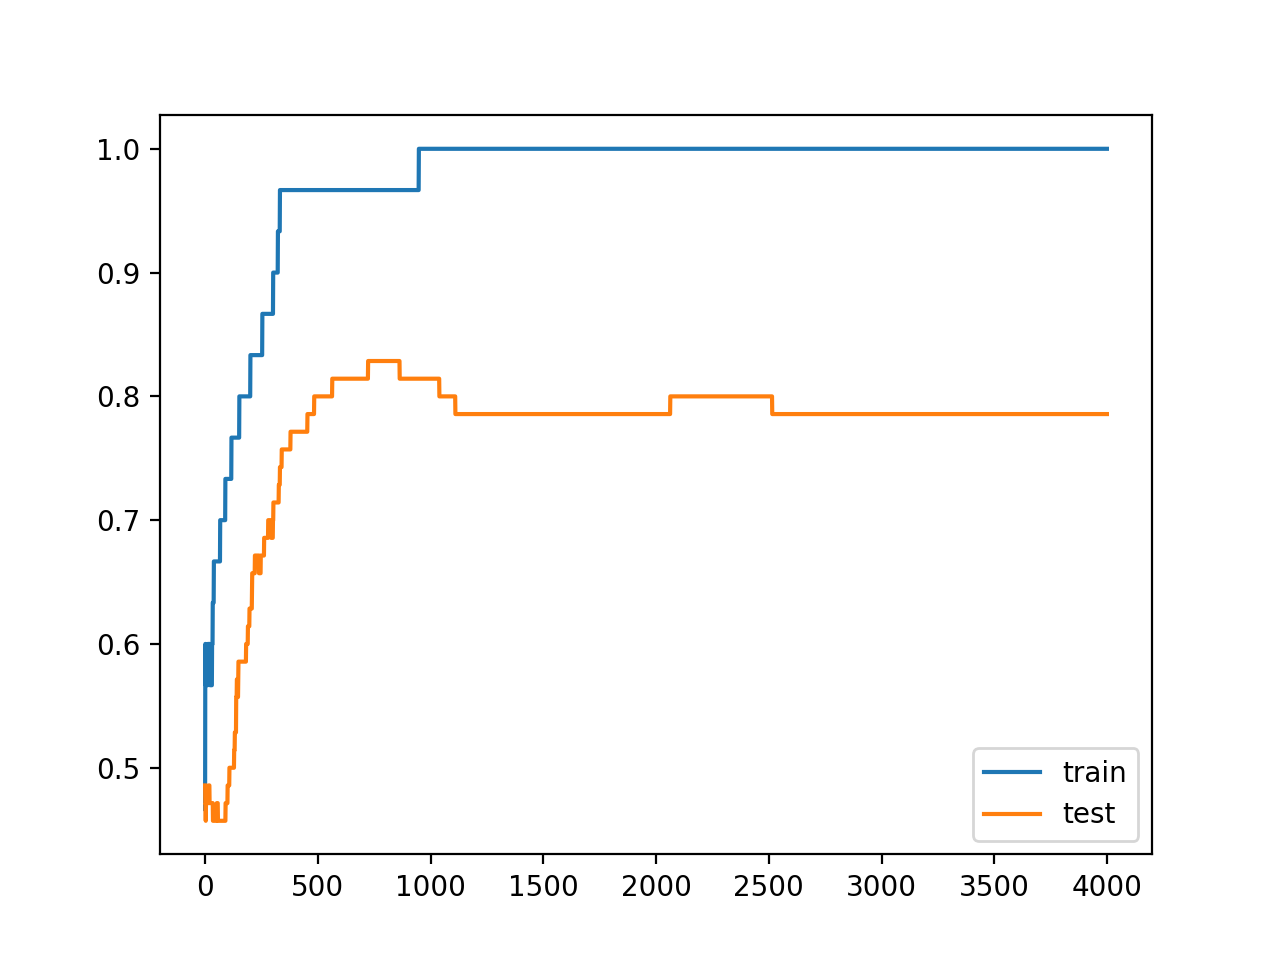 Line Plots of Accuracy on Train and Test Datasets While Training Showing an Overfit